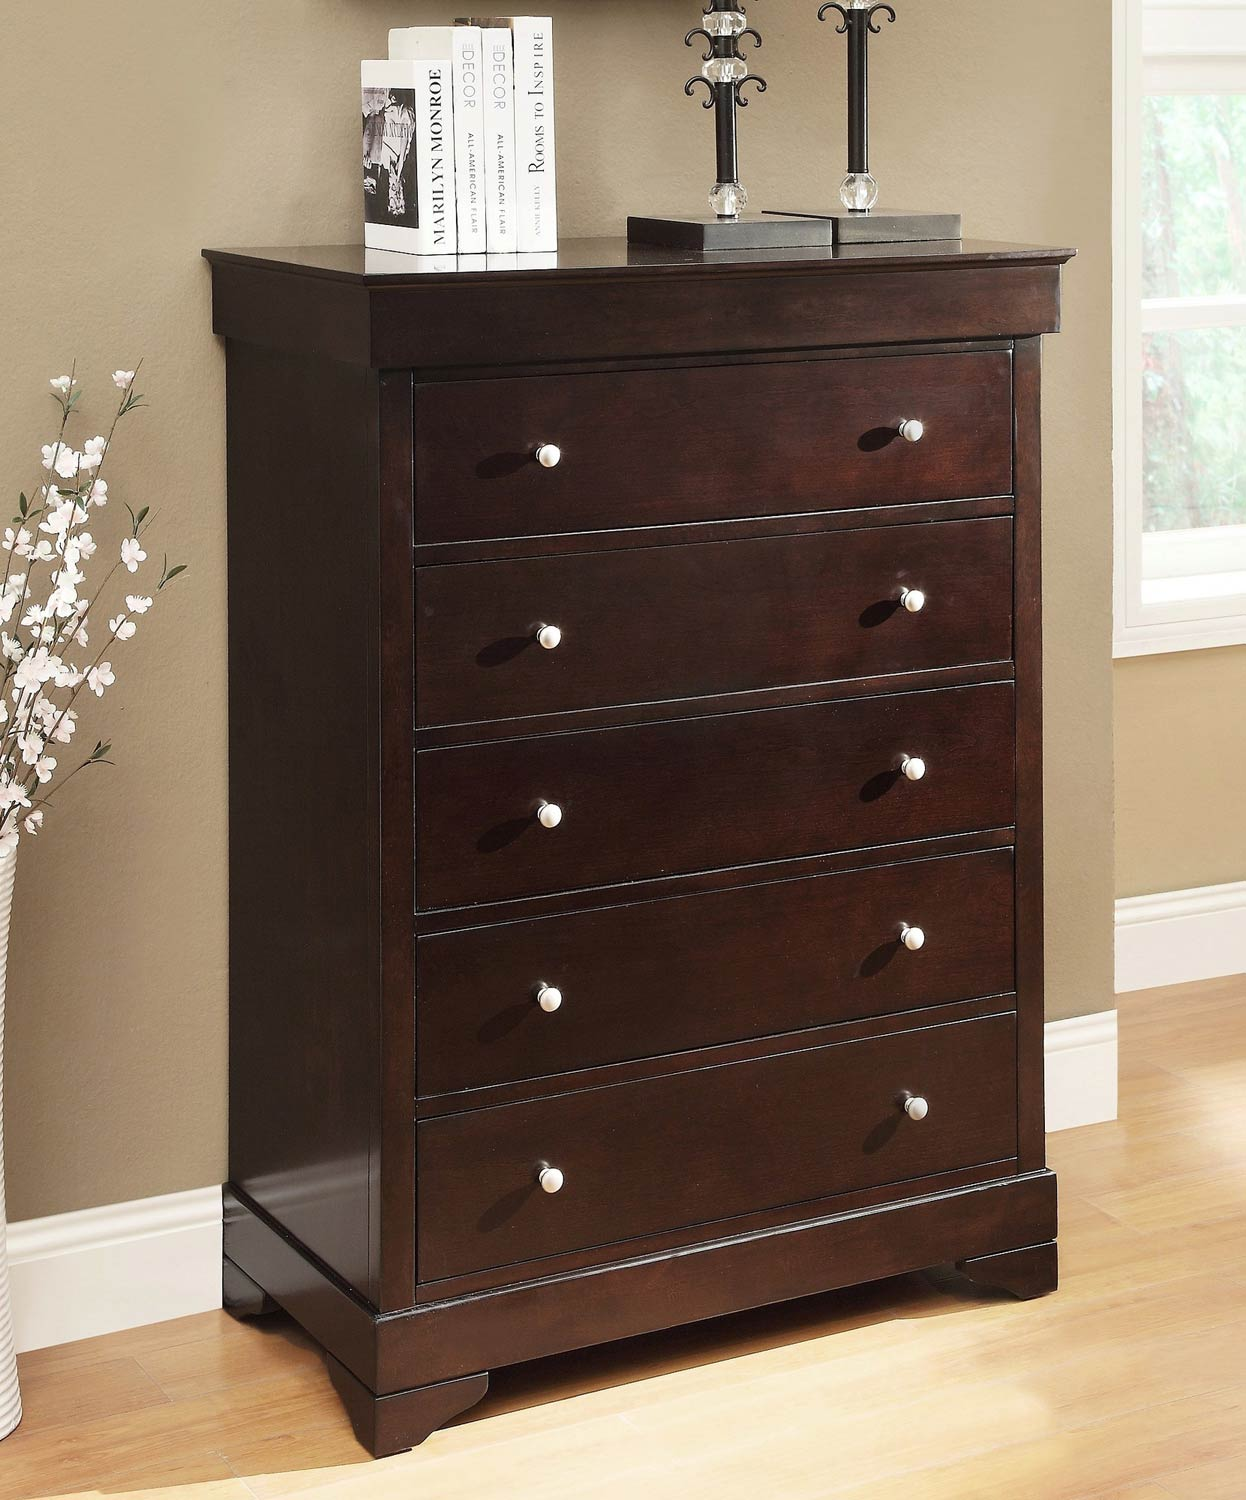 Abbyson Living Marseilles 5 Drawer Chest - Espresso